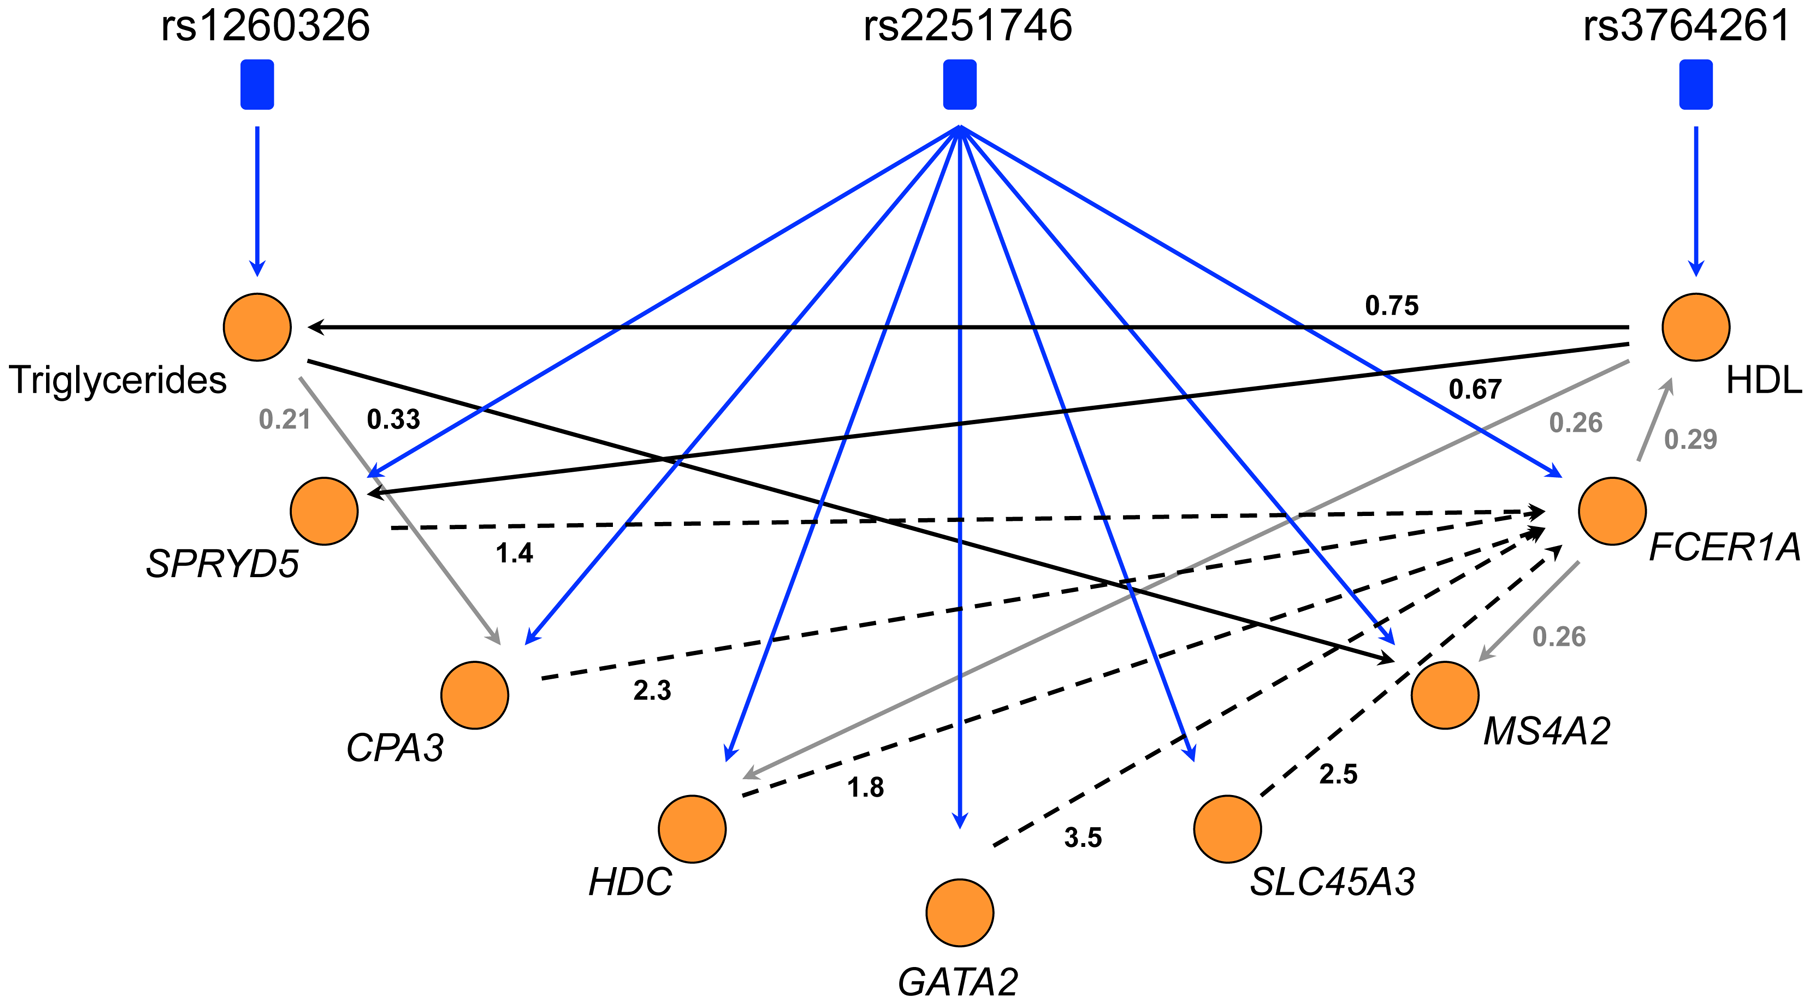 The directed network of core LL module, HDL, and triglycerides.